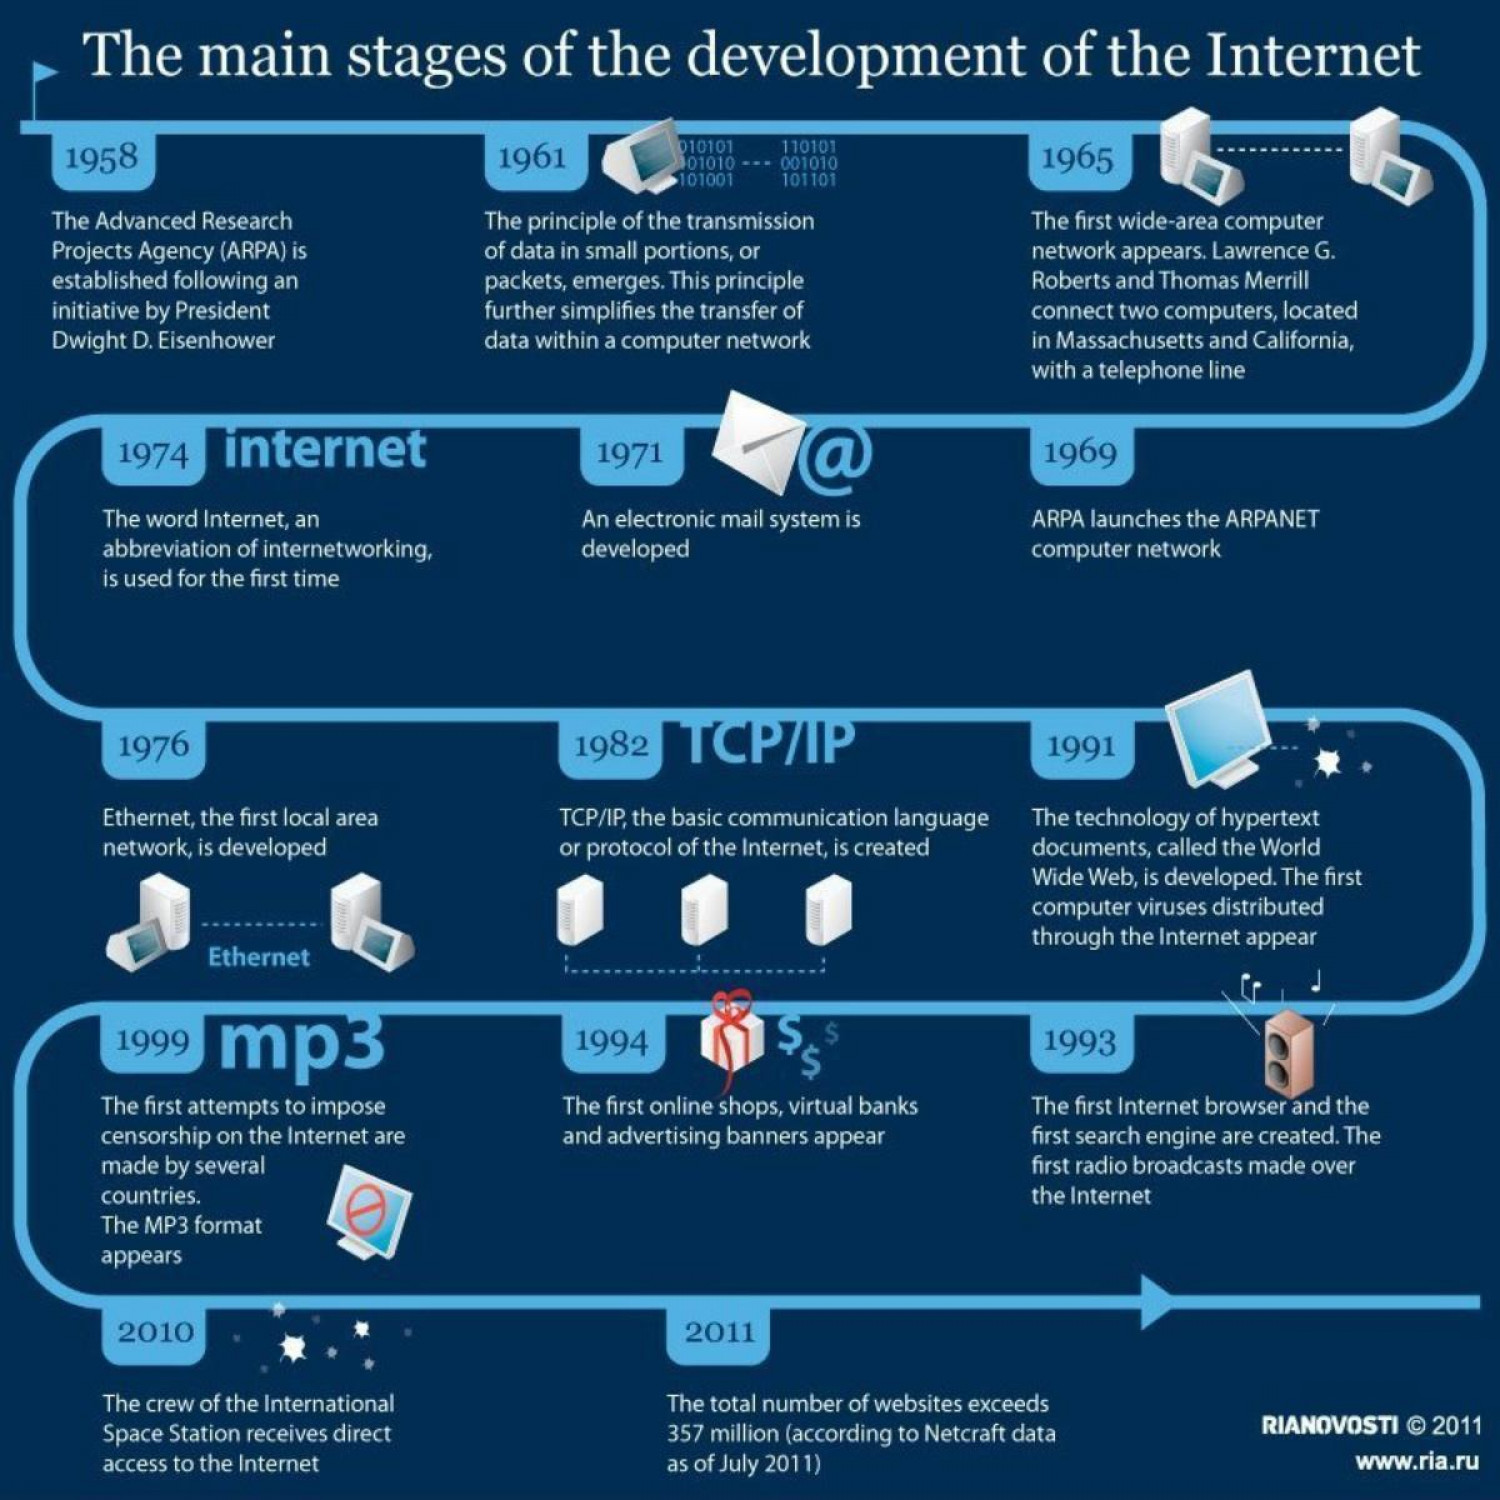 The Main Stages of the Development of the Internet Infographic